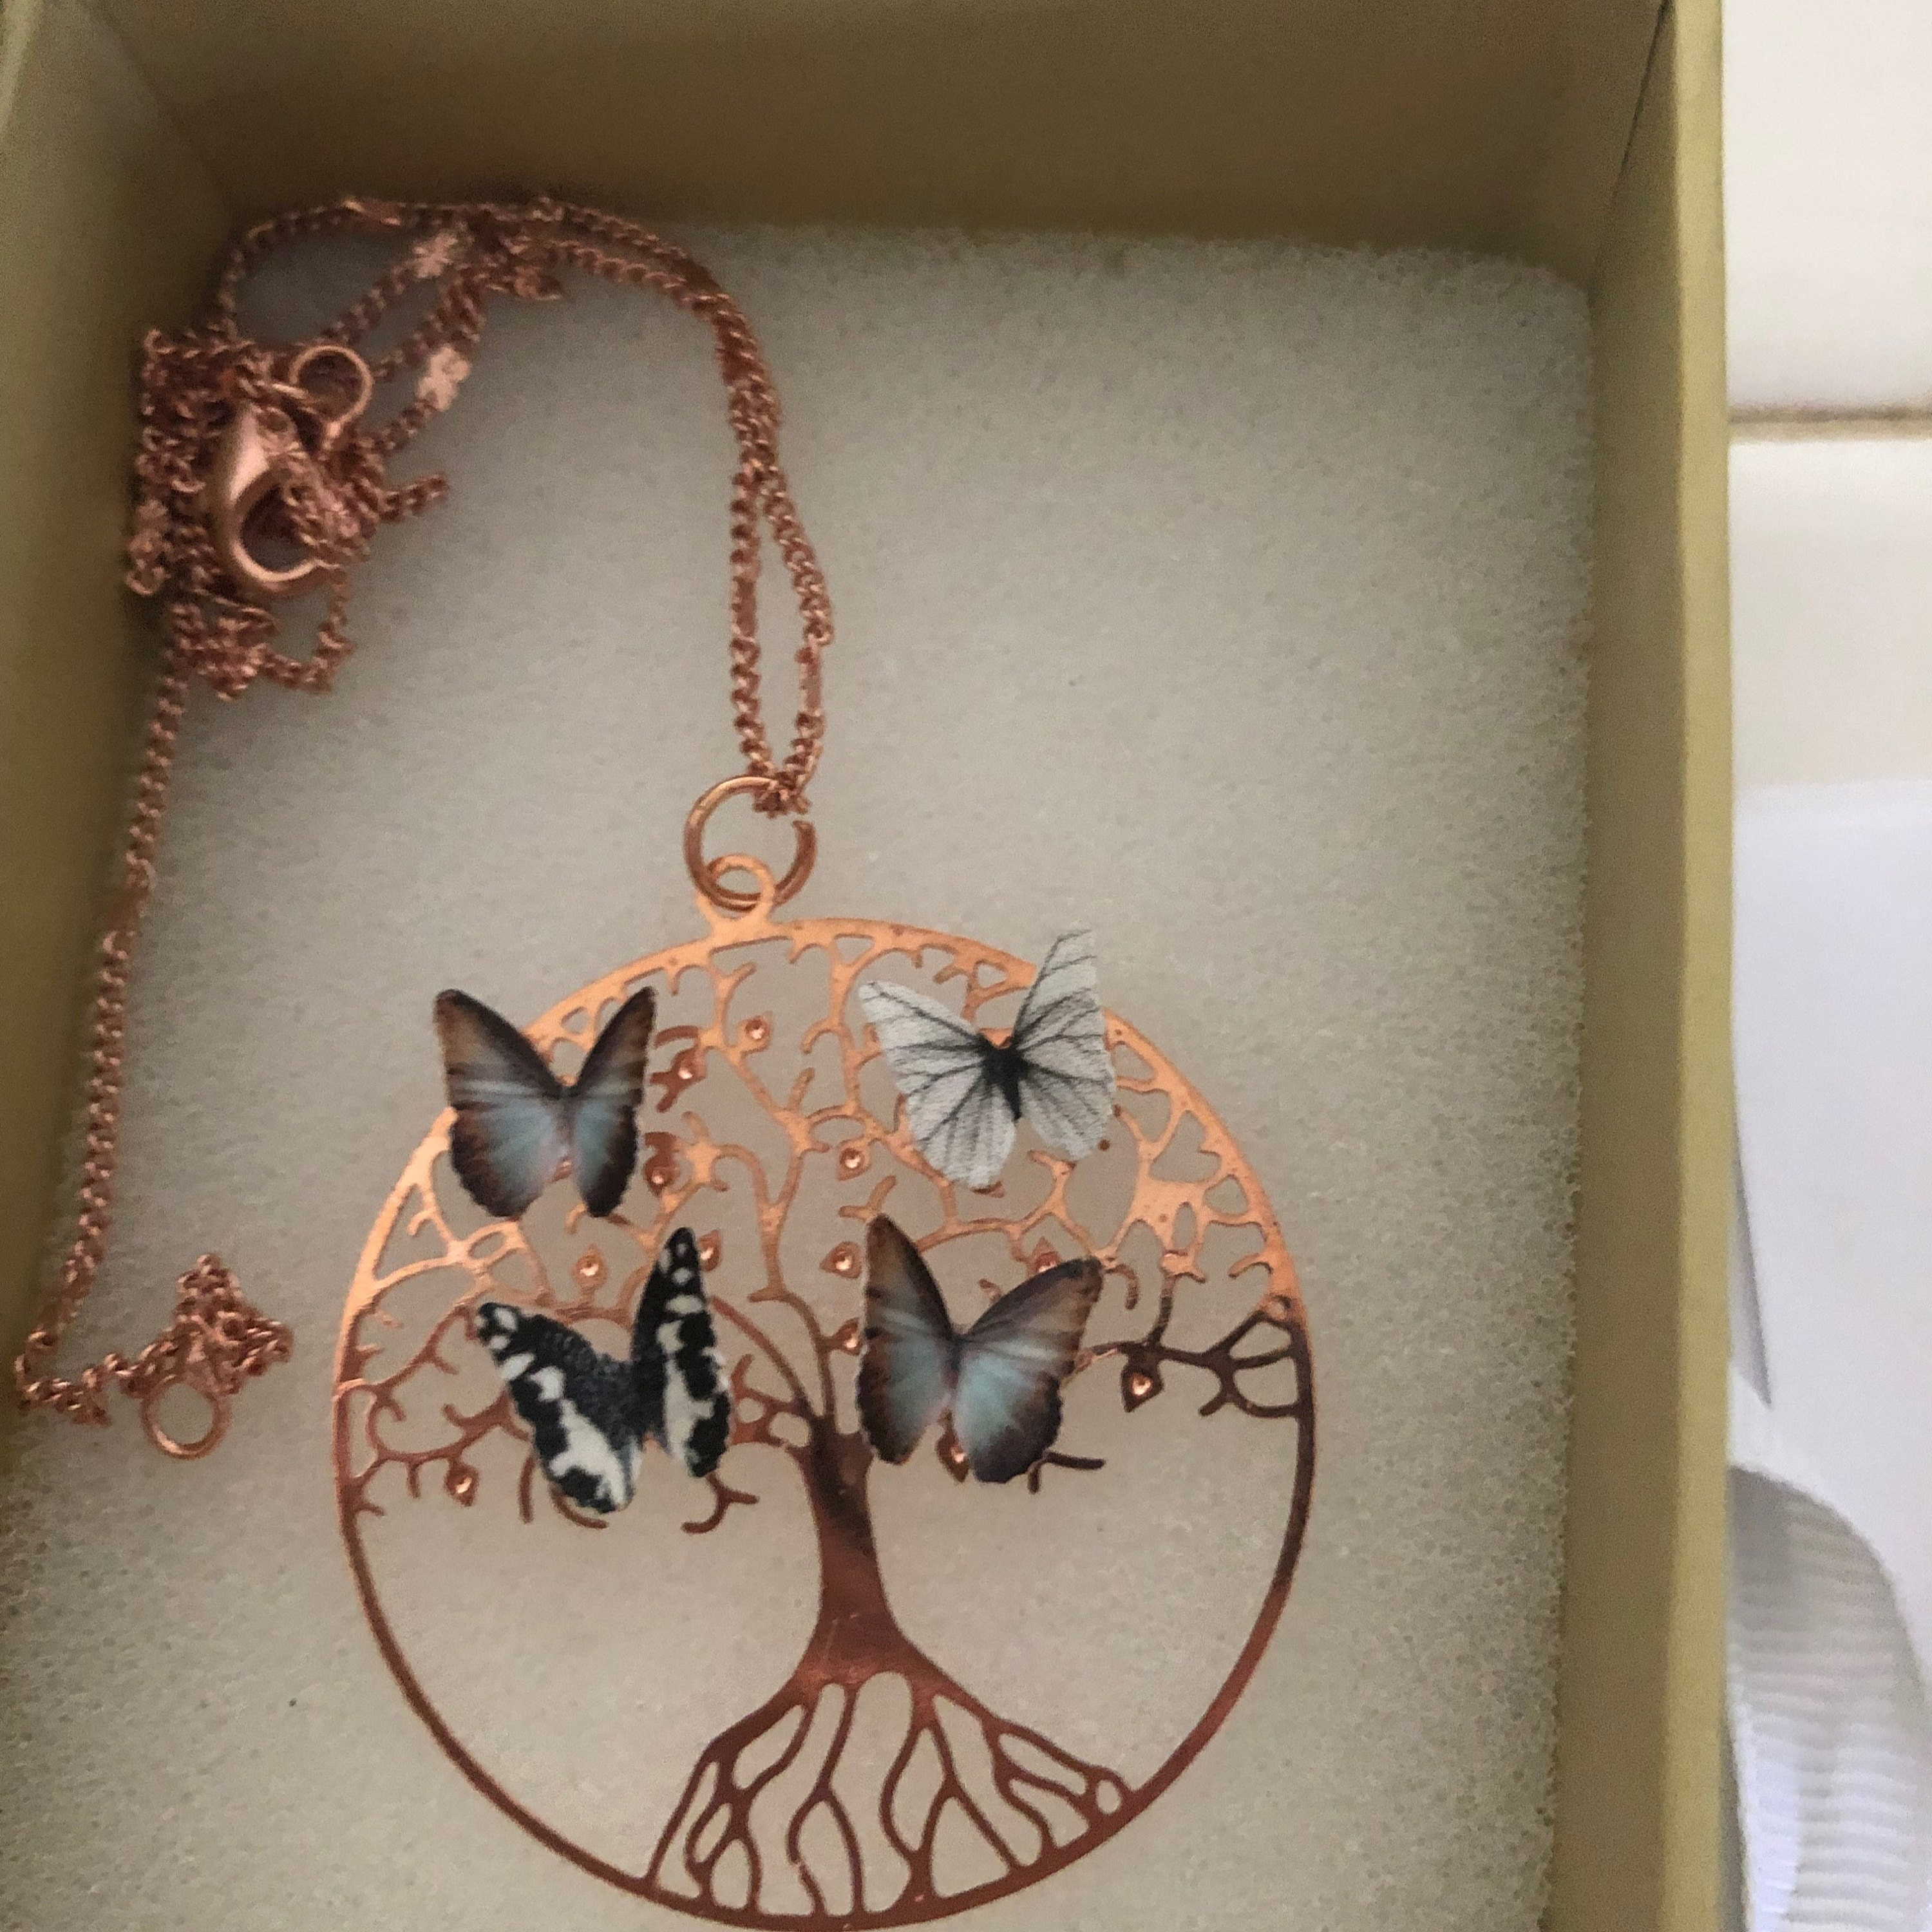 Shanette Owen added a photo of their purchase